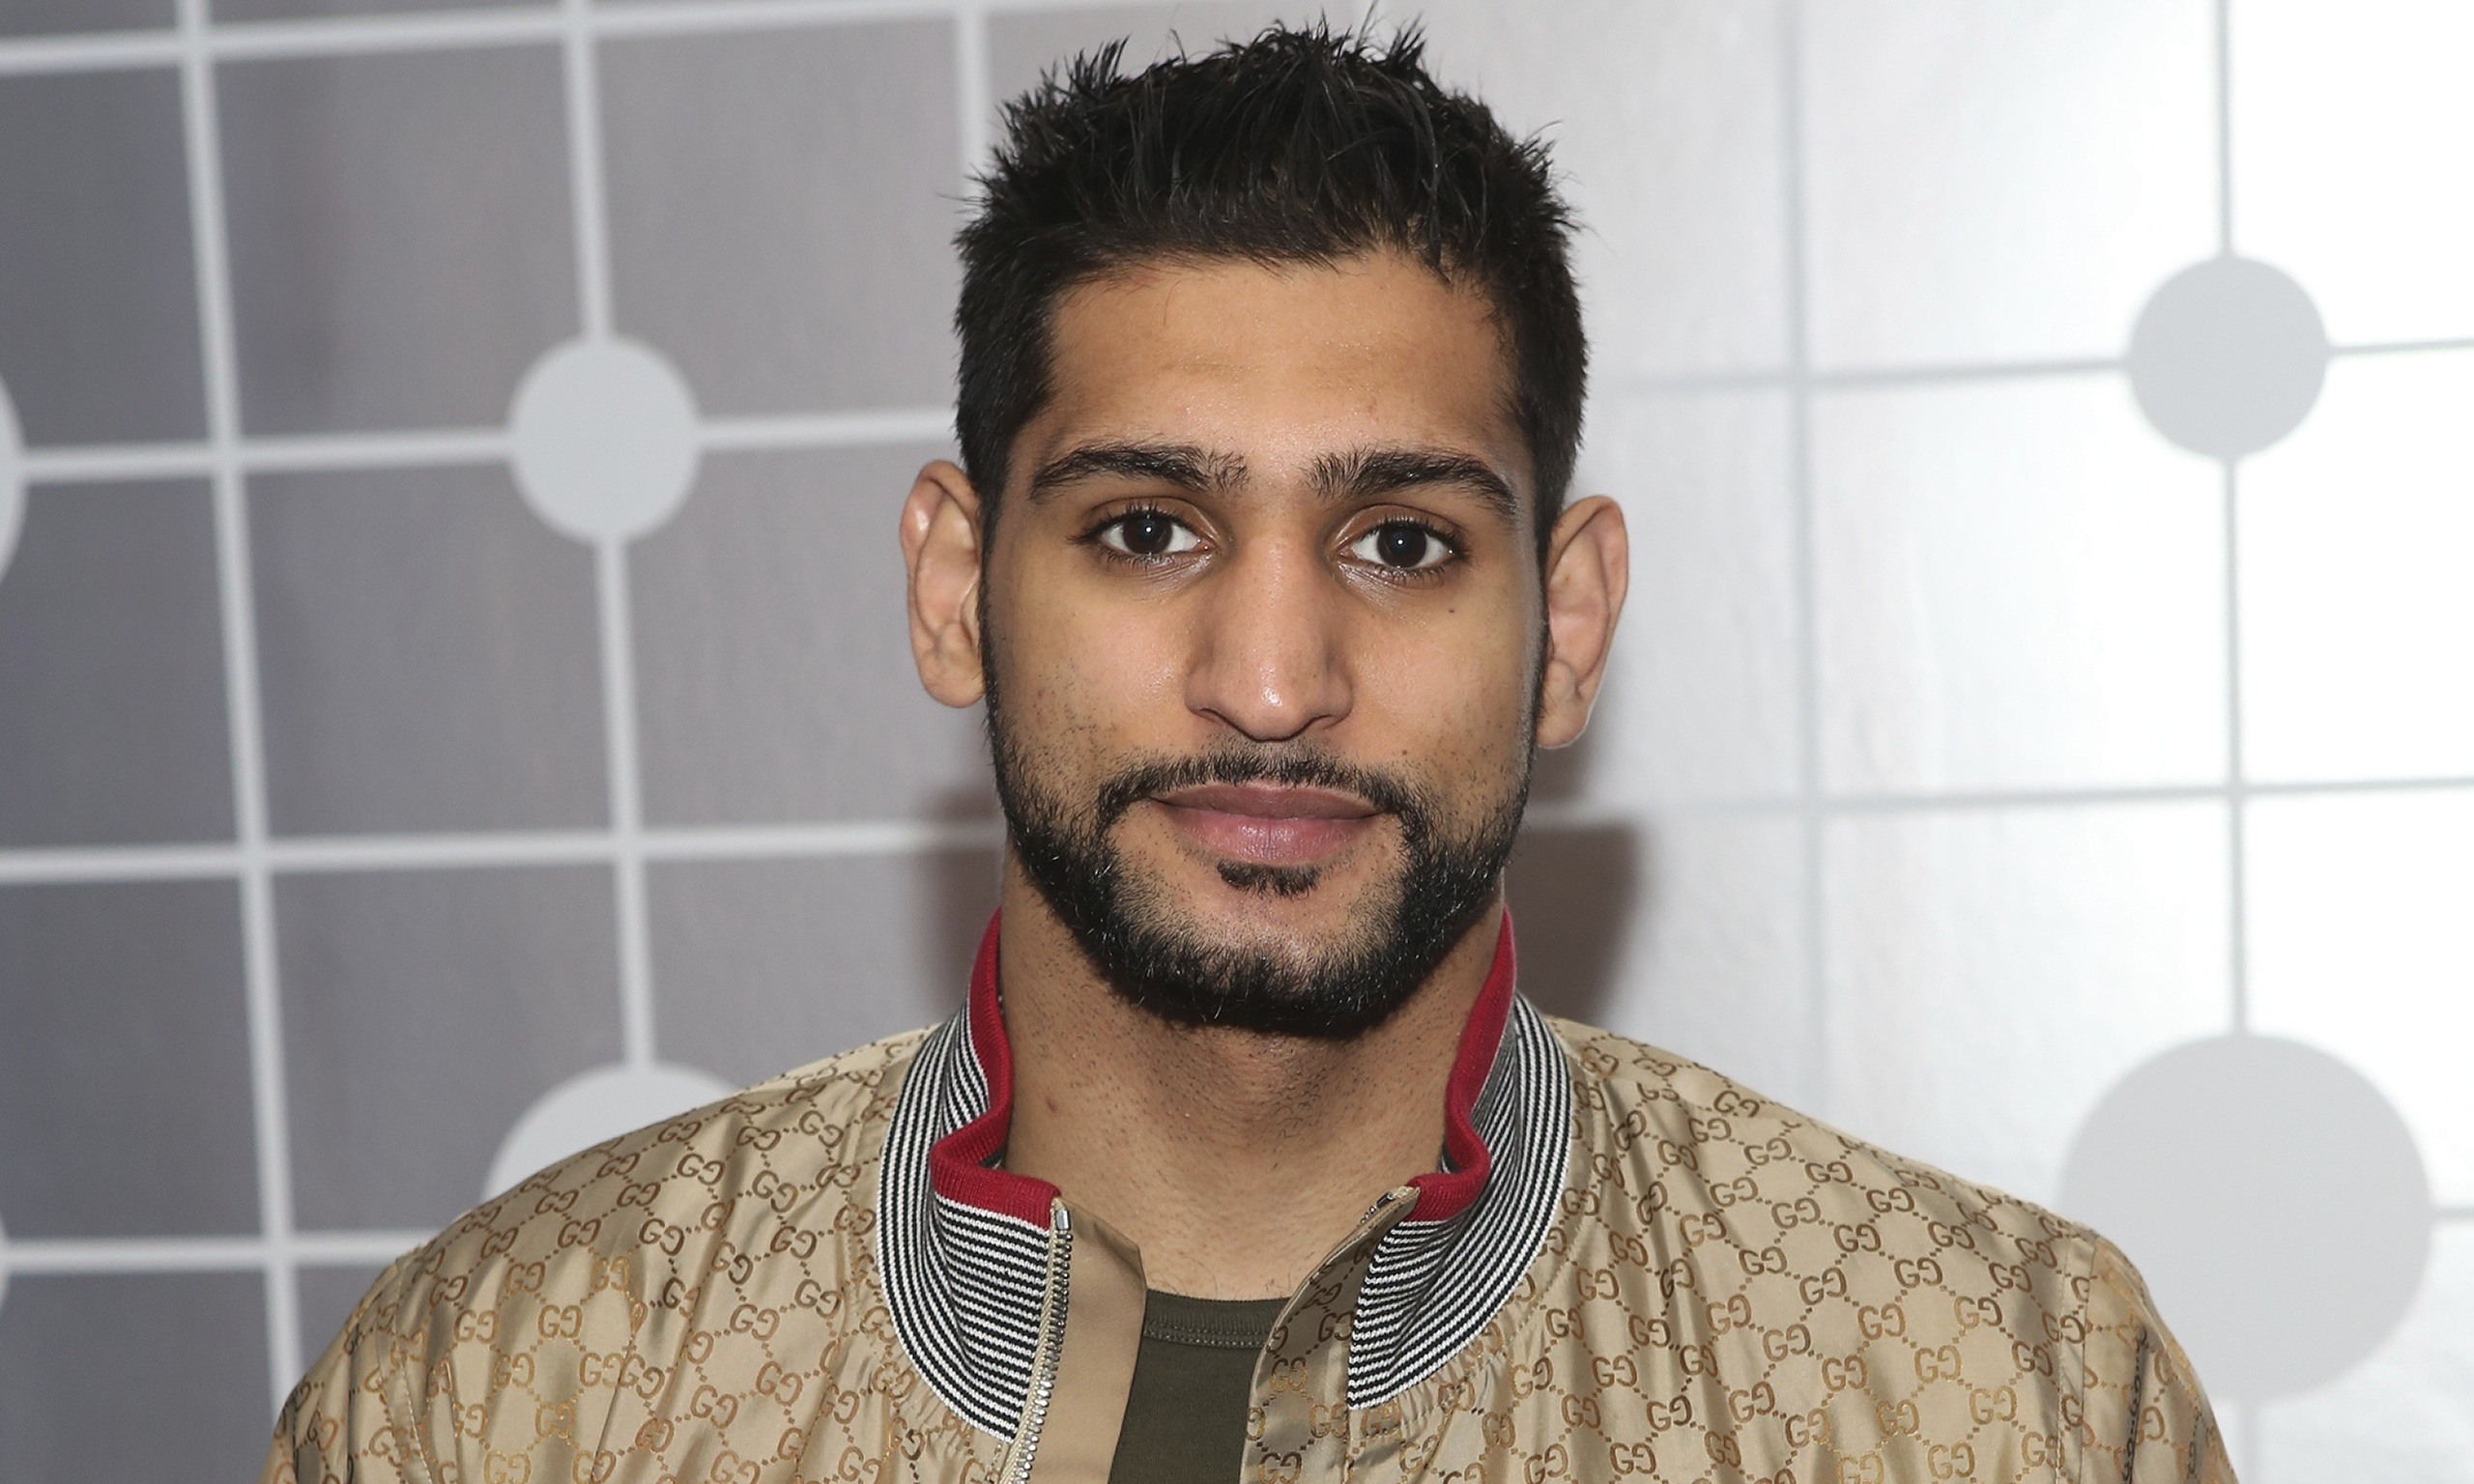 ... Amir Khan a Step Closer to Face Mayweather in September - Amir-Khan-said-of-hopes-f-014